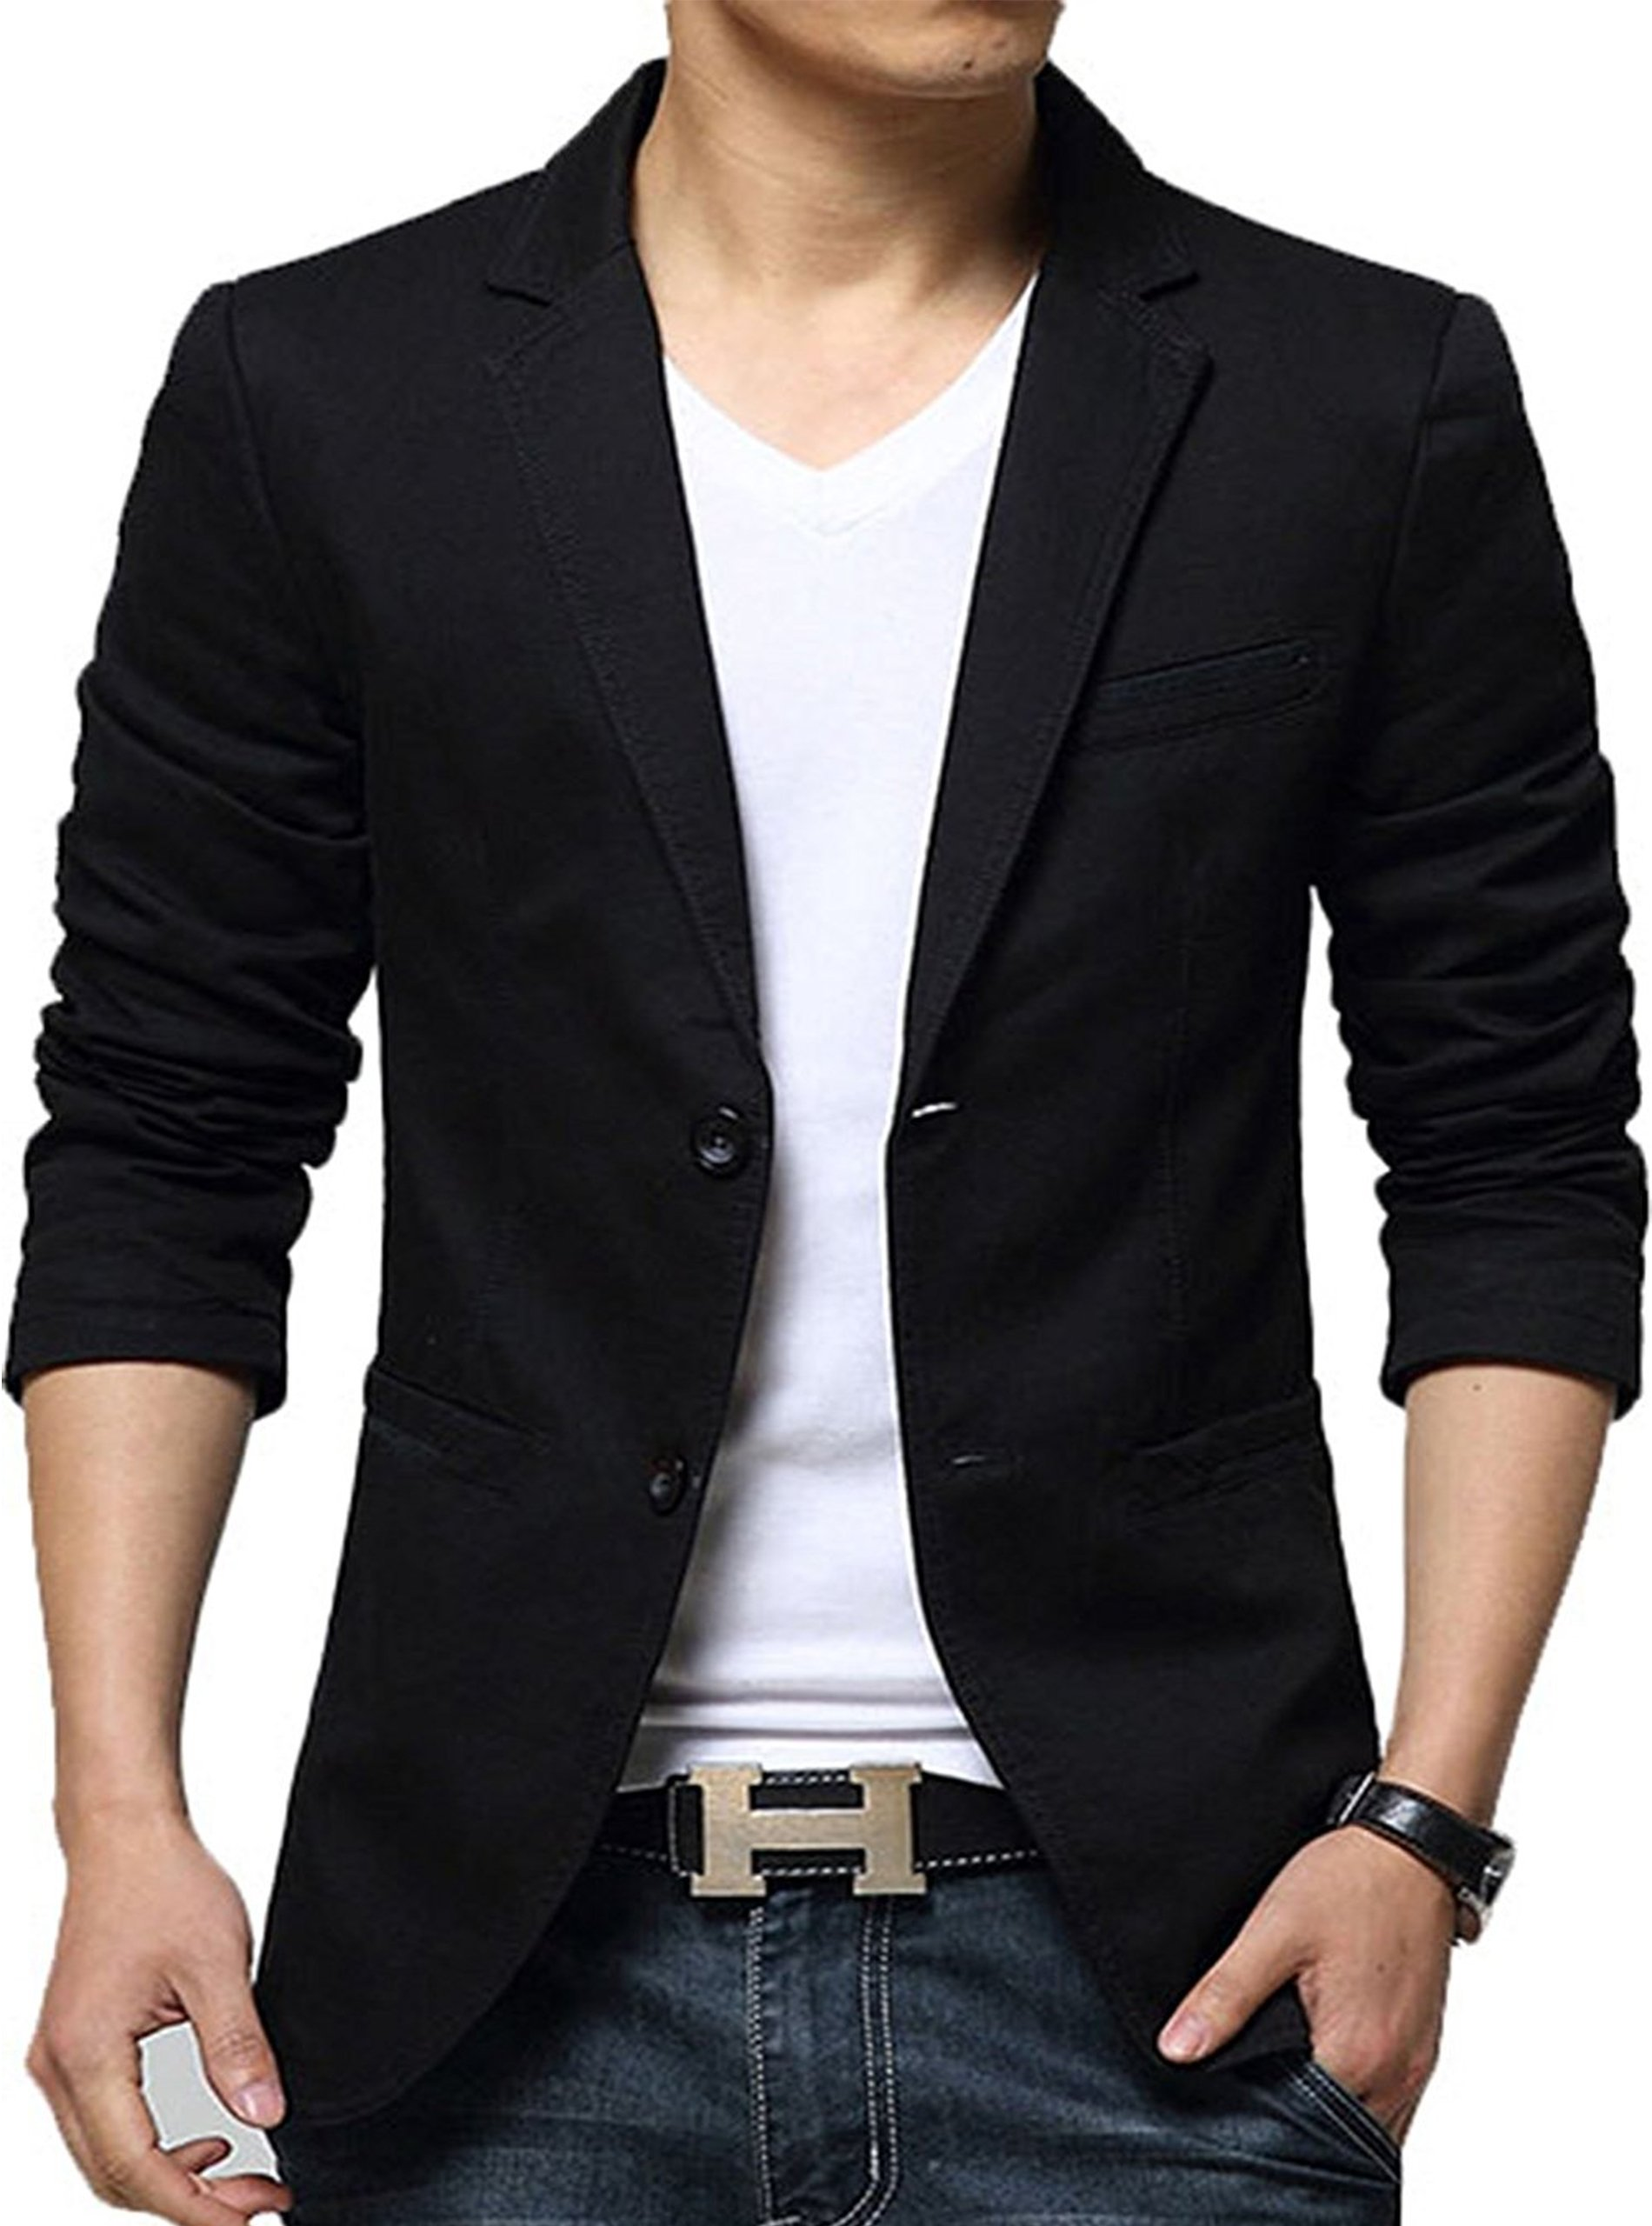 ZITY Men's Summer Business Casual Youth Thin Blazer Jacket Black US L/Label 4XL 318